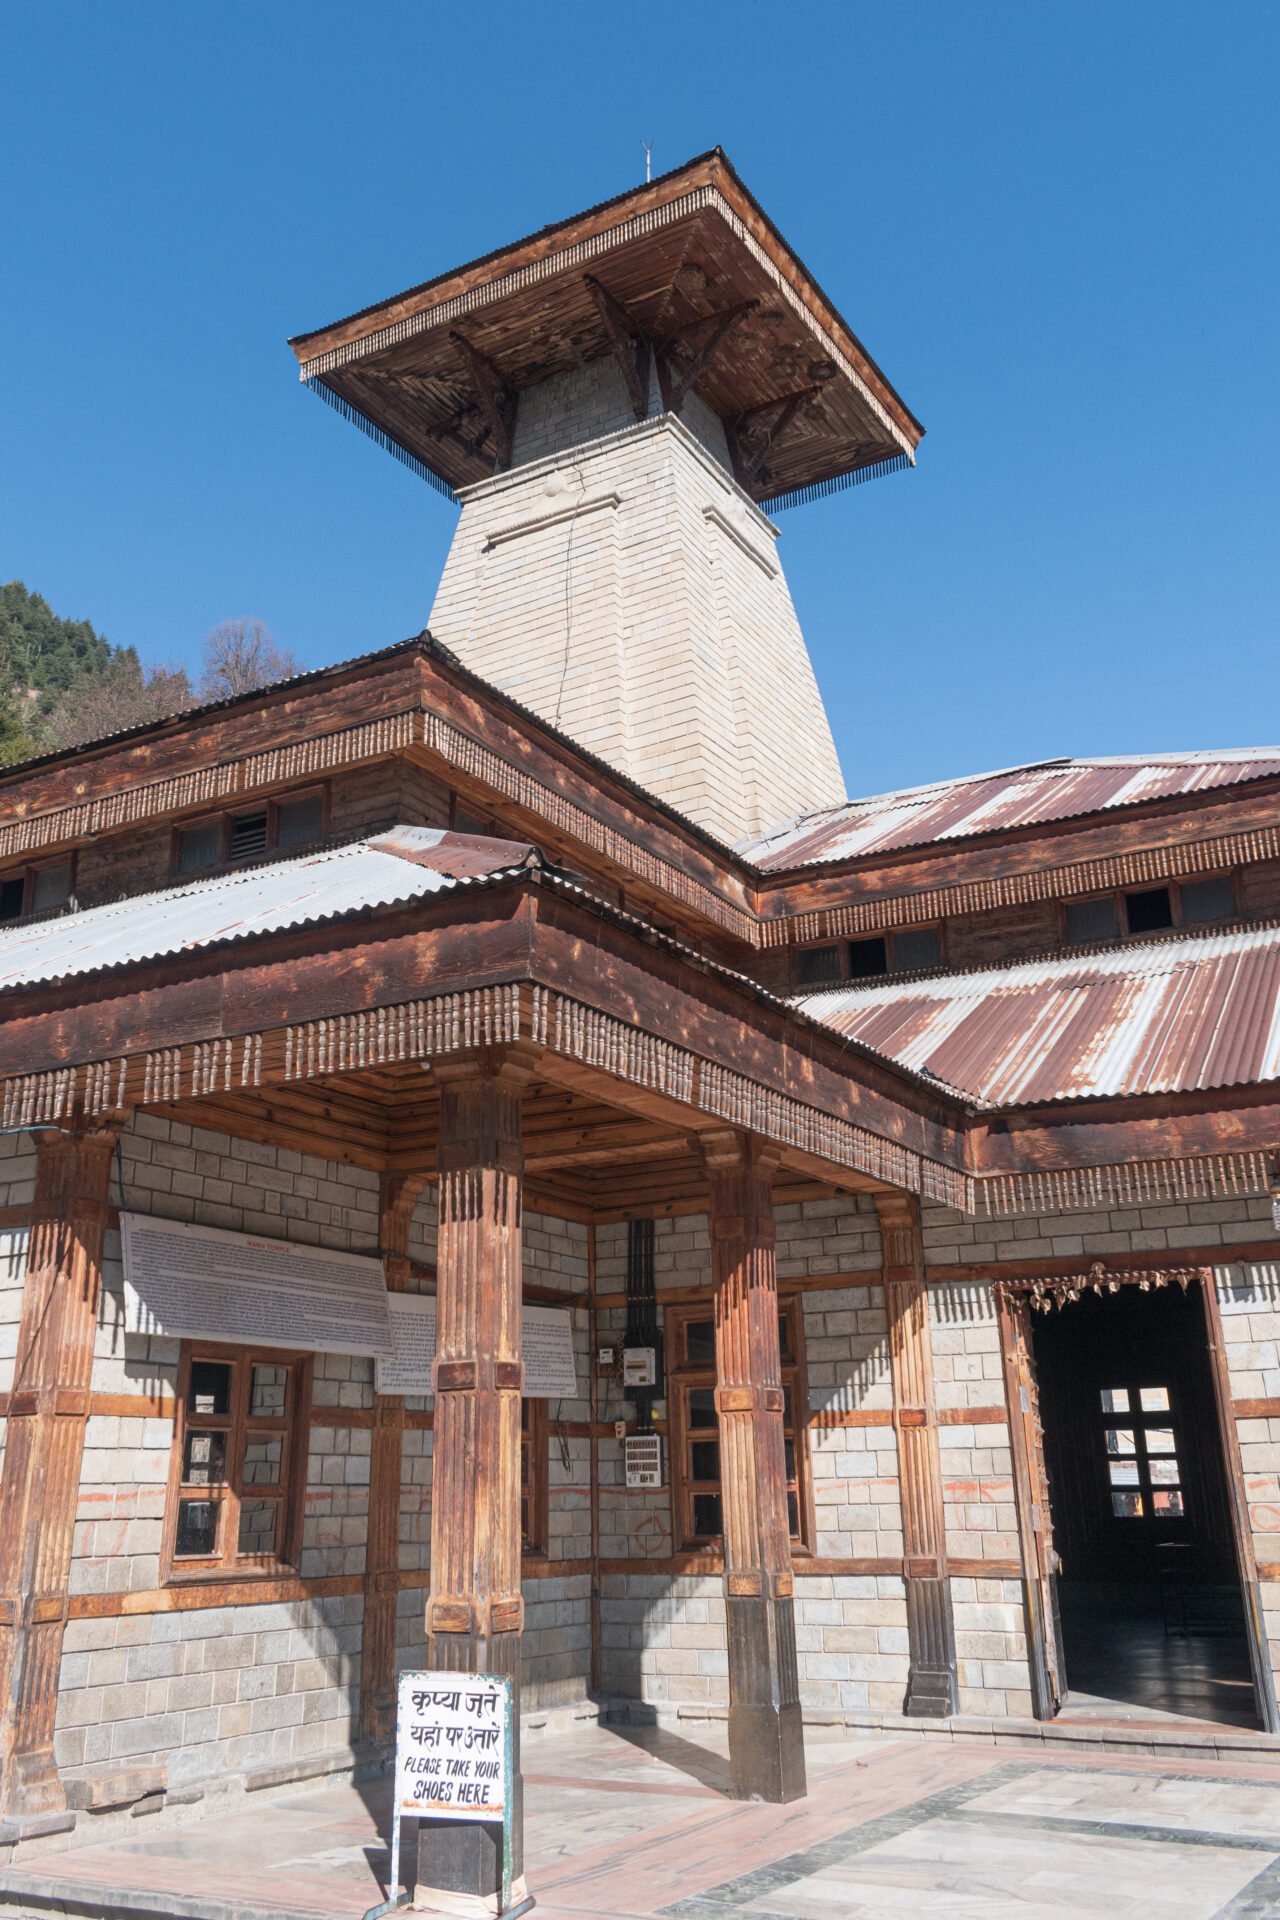 Entrance to the Manu Temple Manali